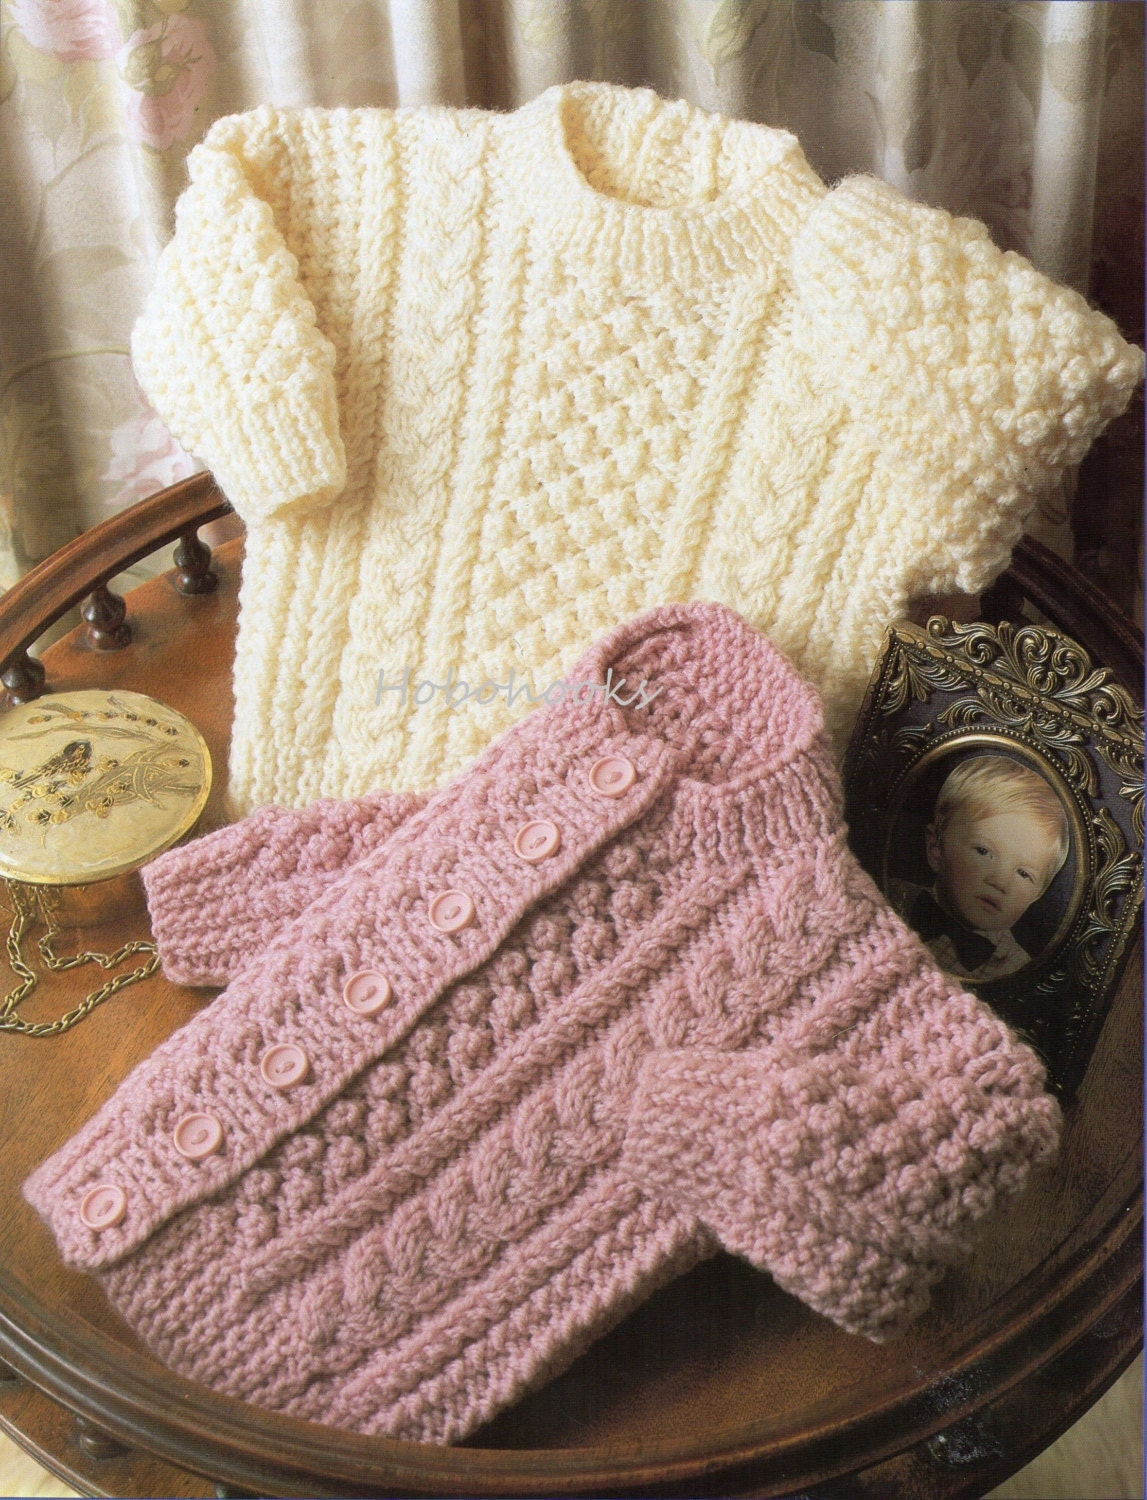 Childs Aran Jumper Knitting Pattern : Baby Knitting Pattern Baby Aran Sweater Baby Aran by Hobohooks